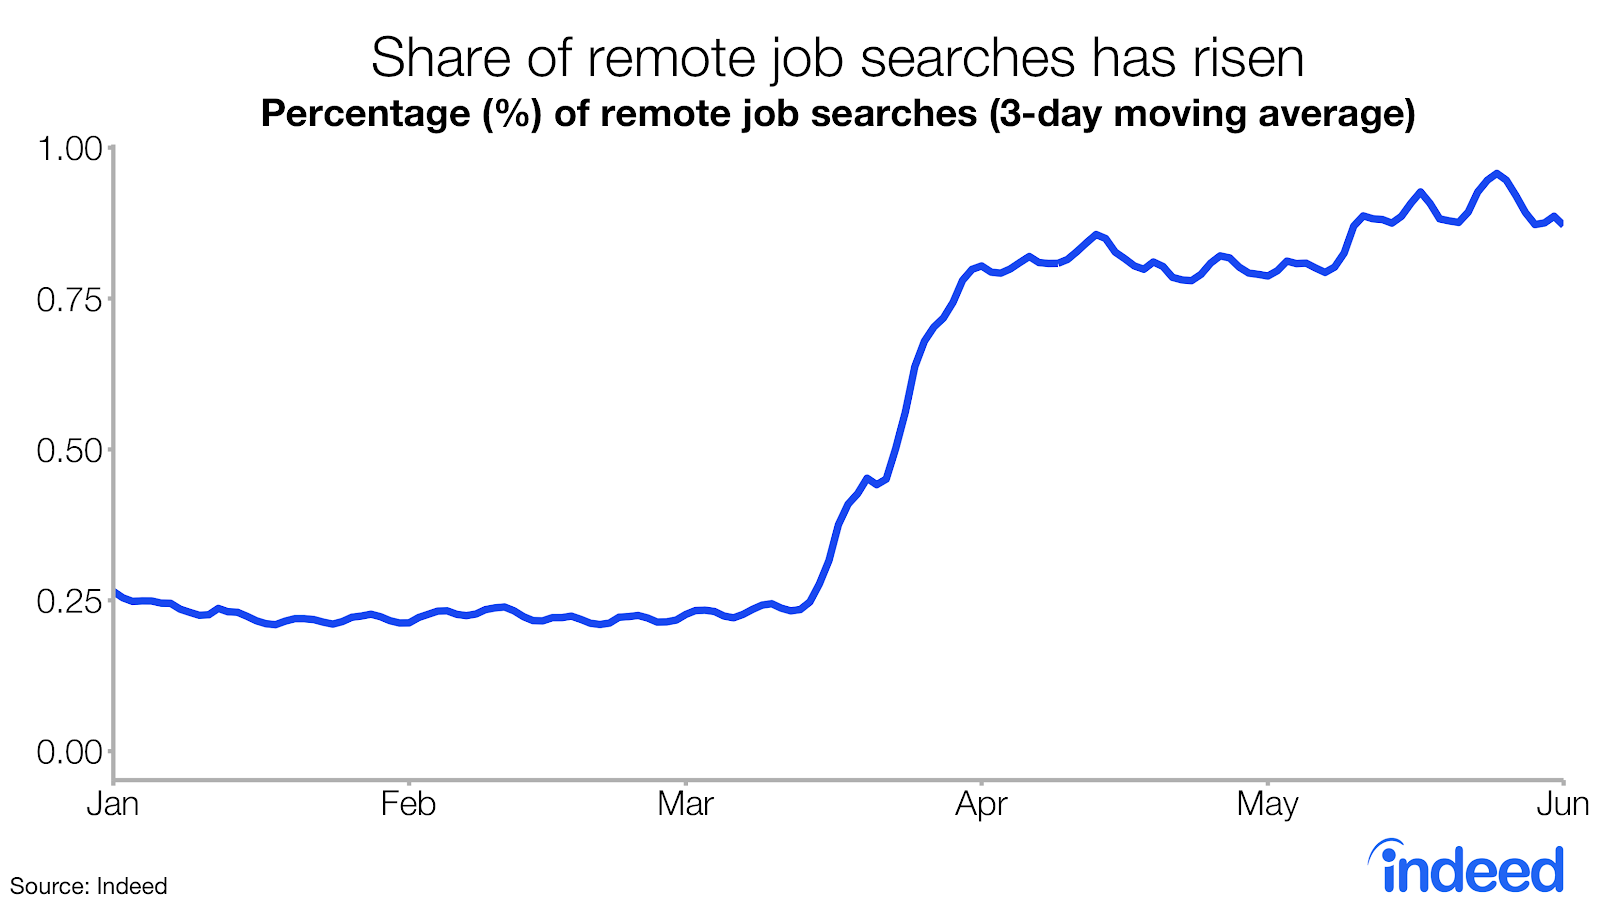 share of remote job searches has risen